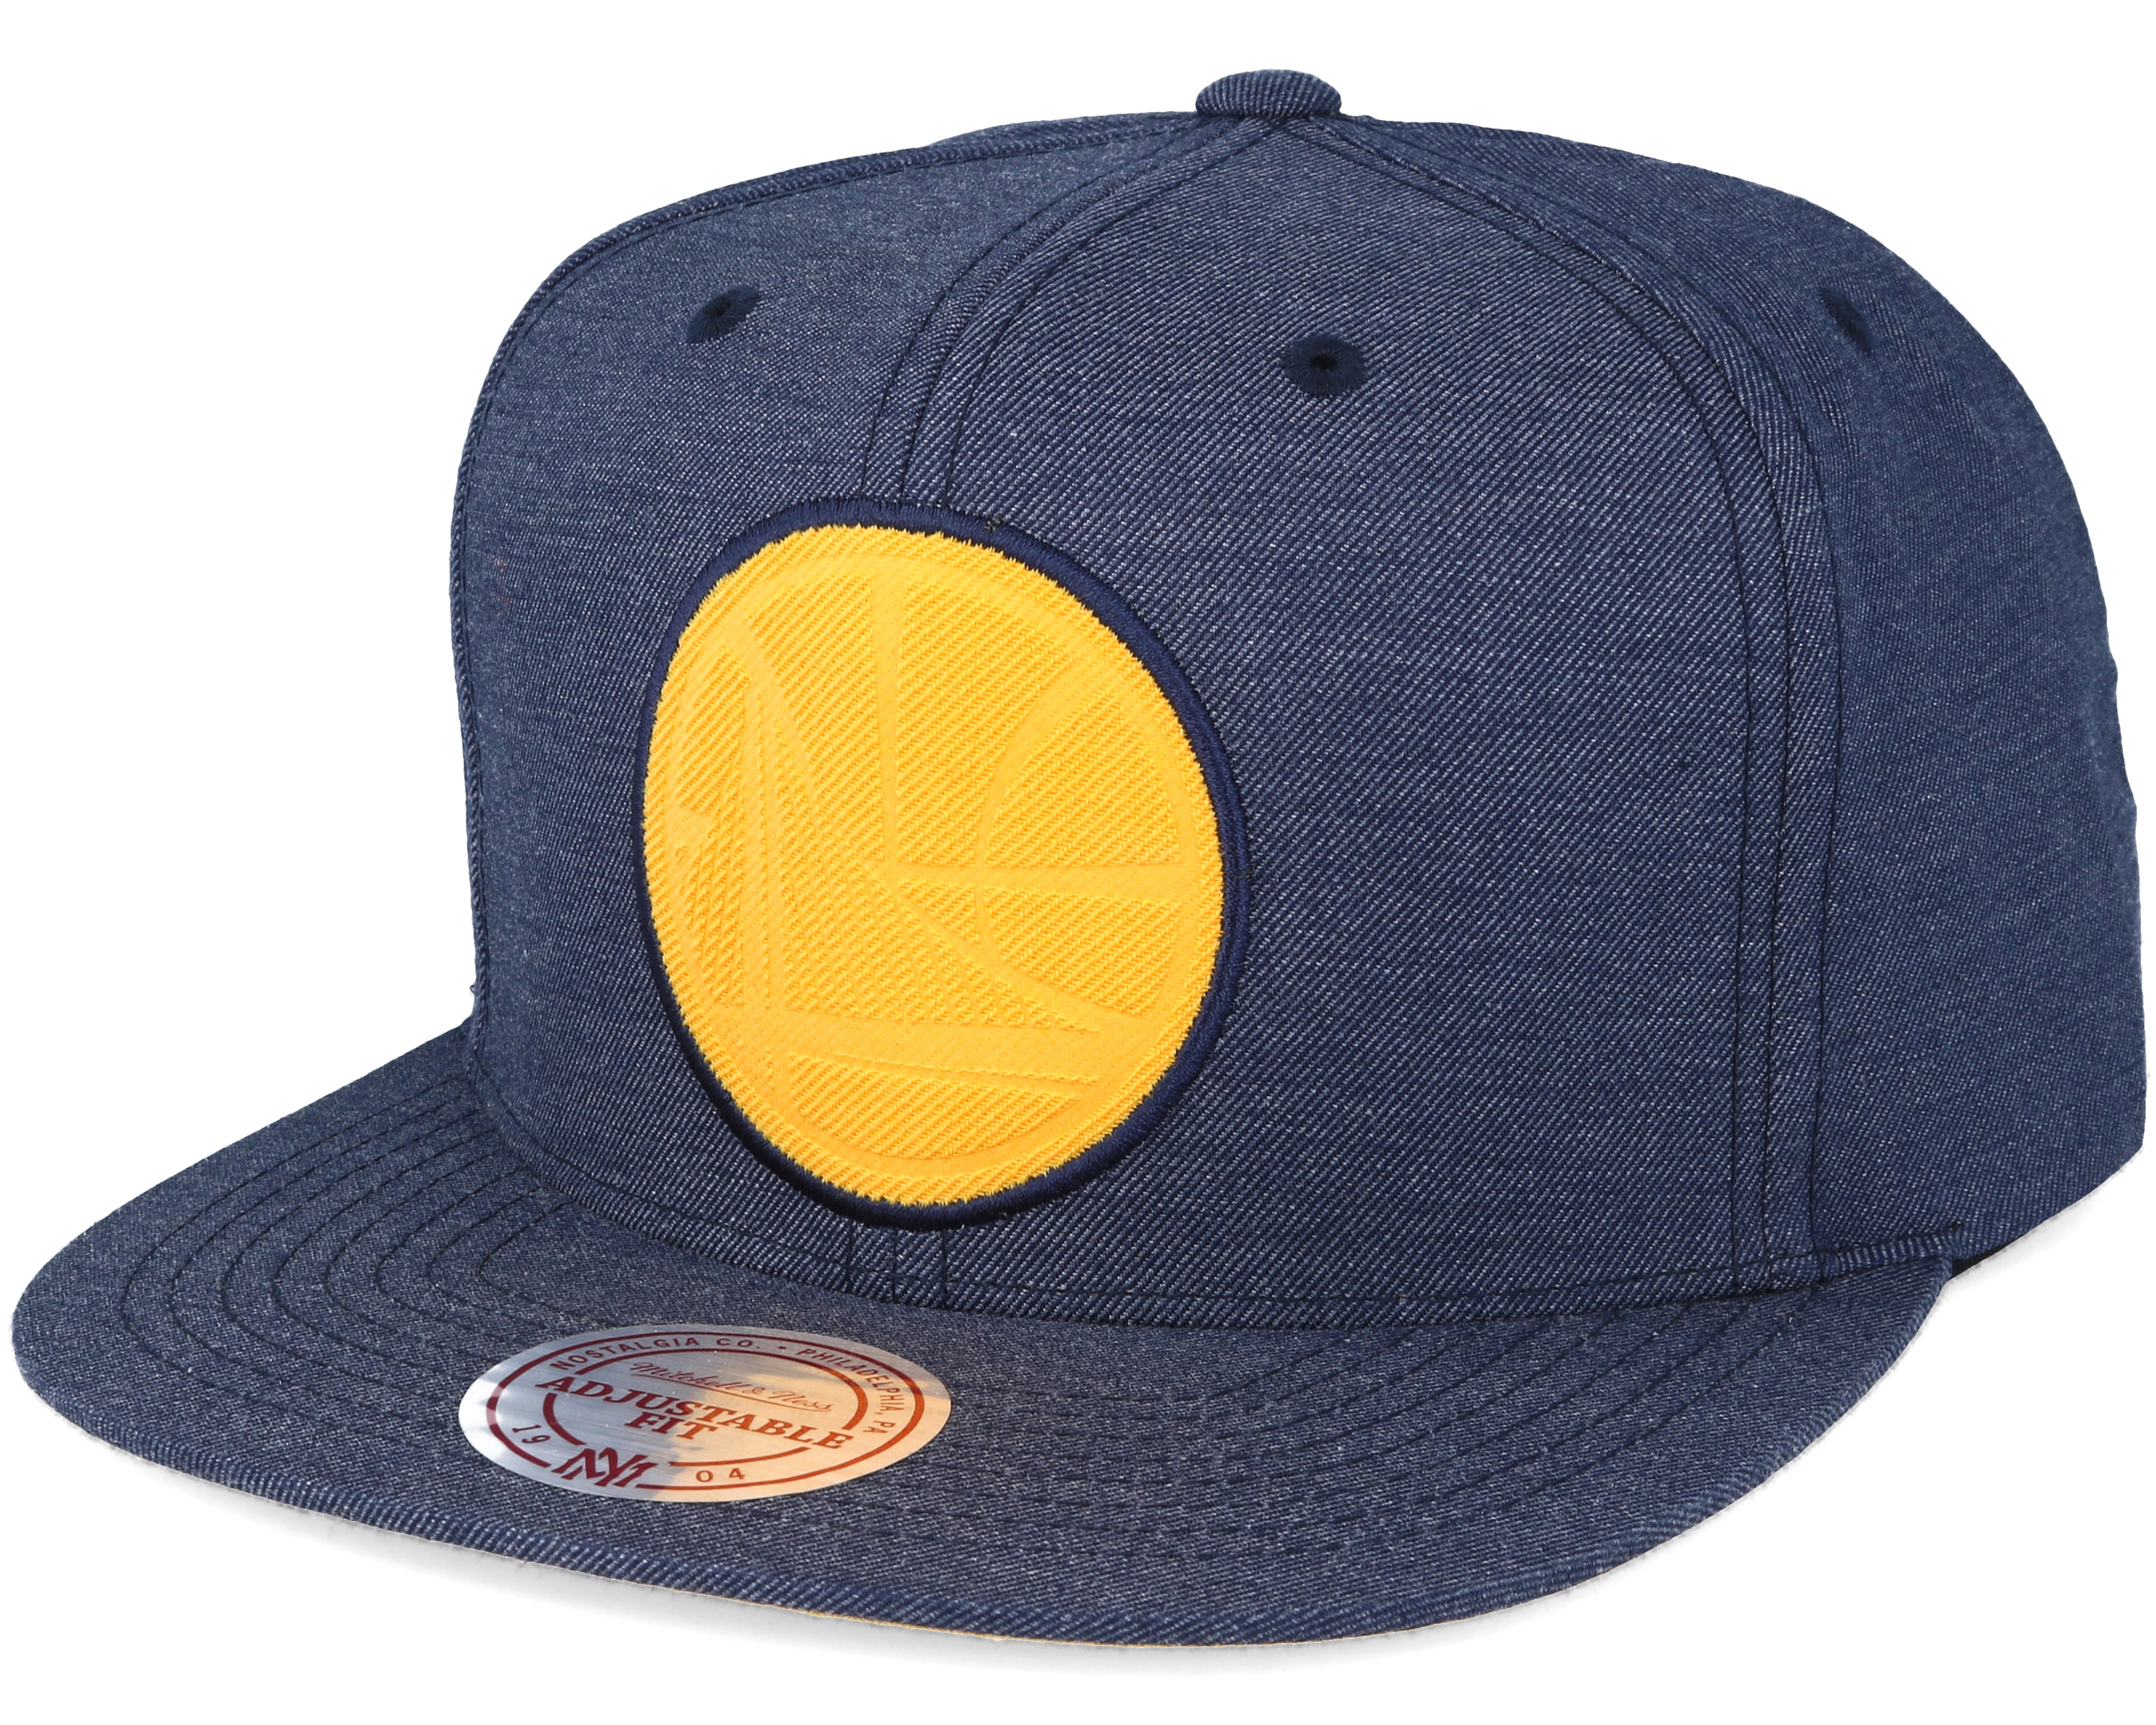 on sale d8a0f e7a94 ... uk golden state warriors cut heather blue snapback mitchell ness bf262  a2ed3